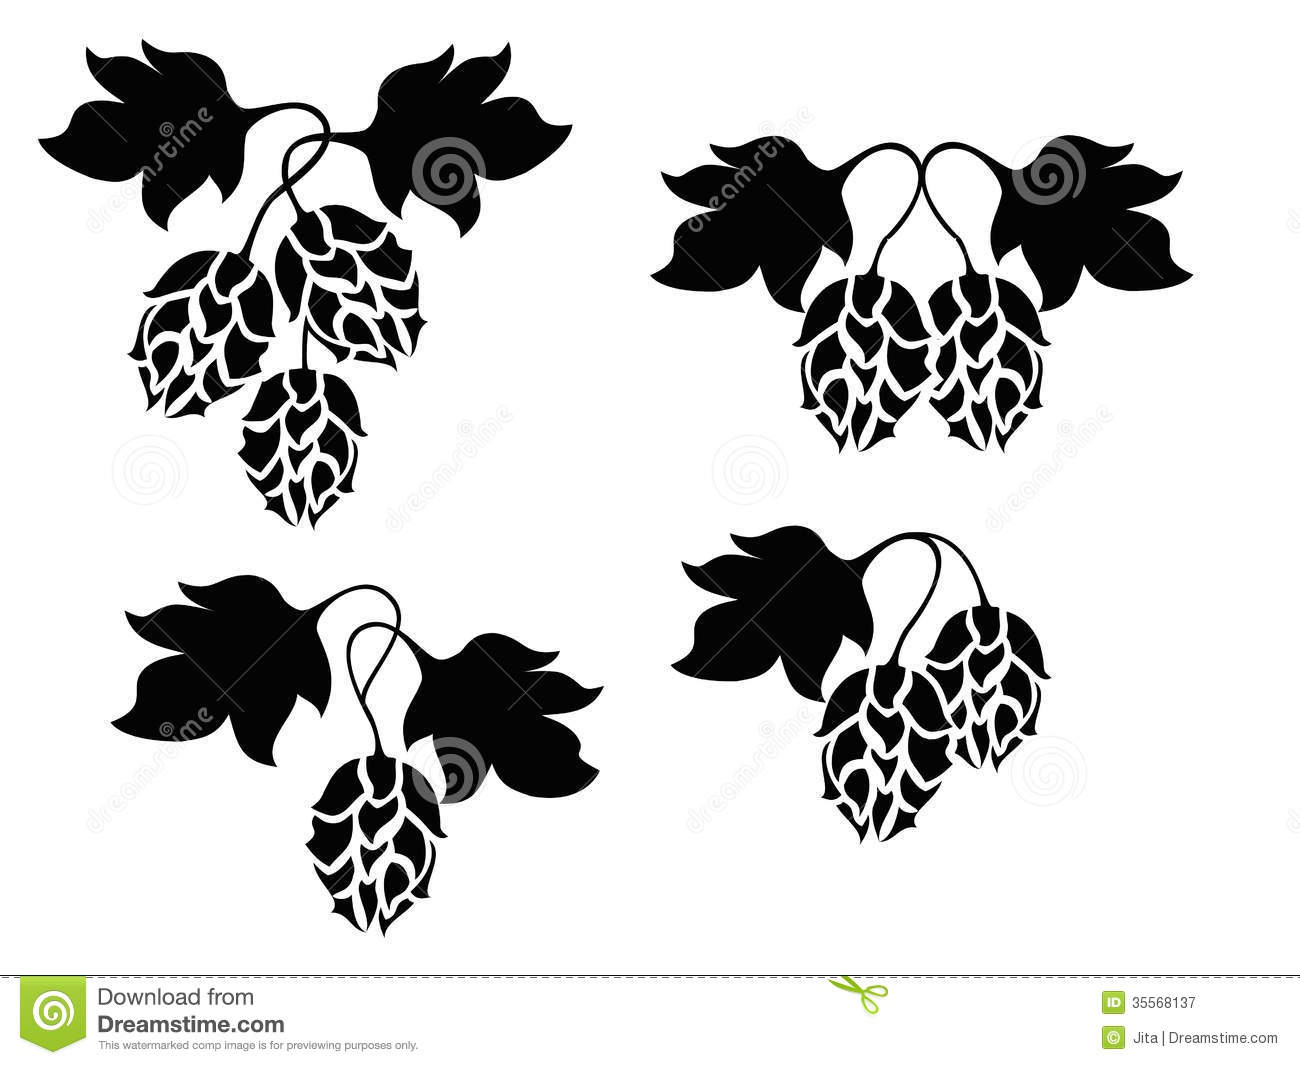 Hops And Barley Clip Art Hops Plant Royalty Free Stock